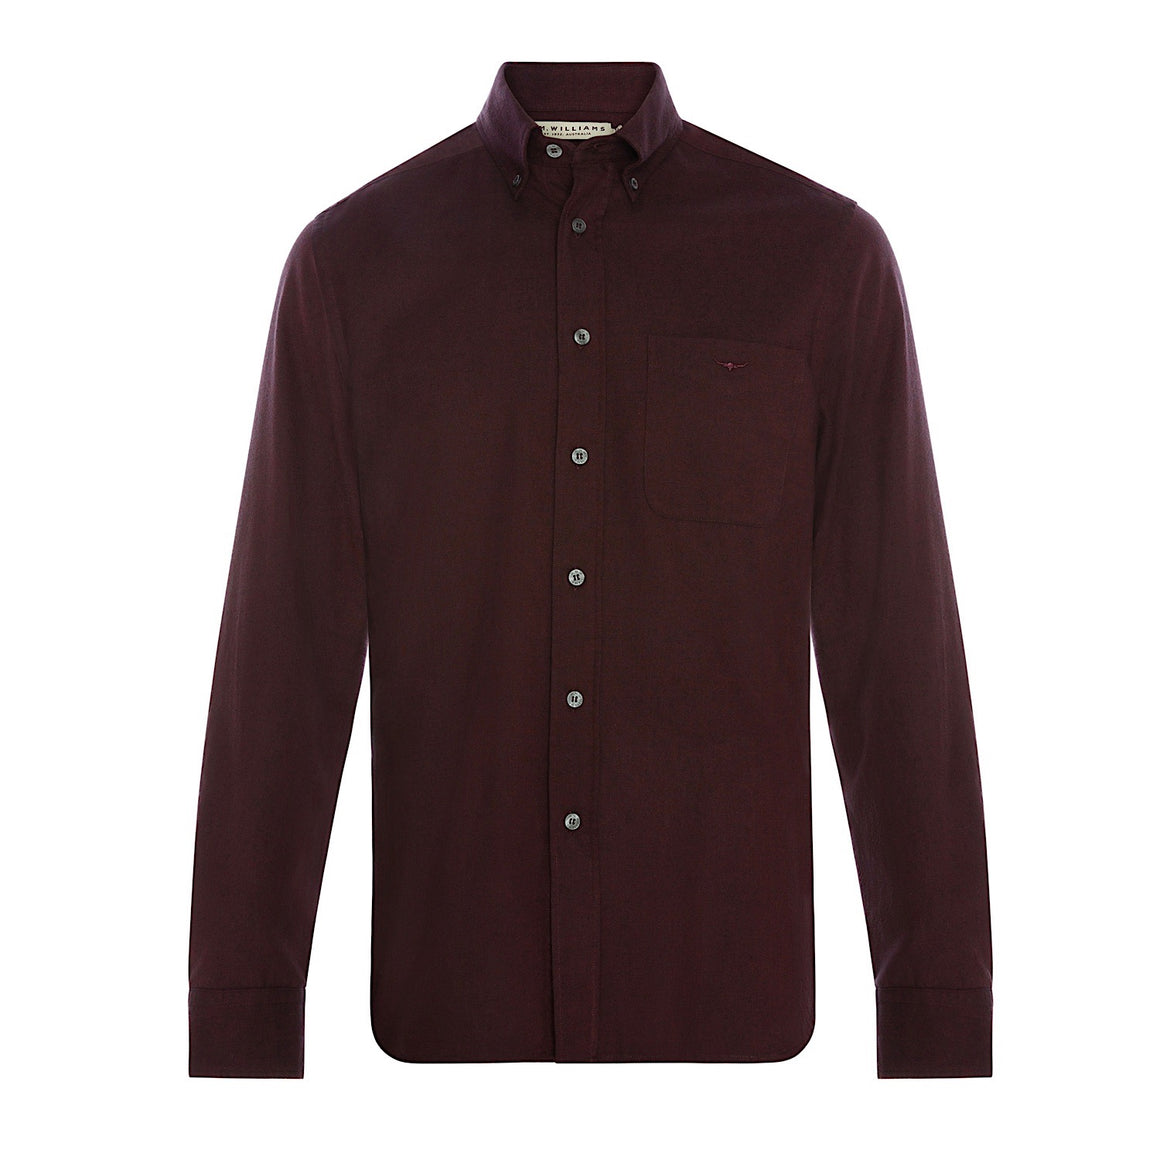 R.M.Williams Jervis Button Down Shirt Black/Burgundy Slim Fit